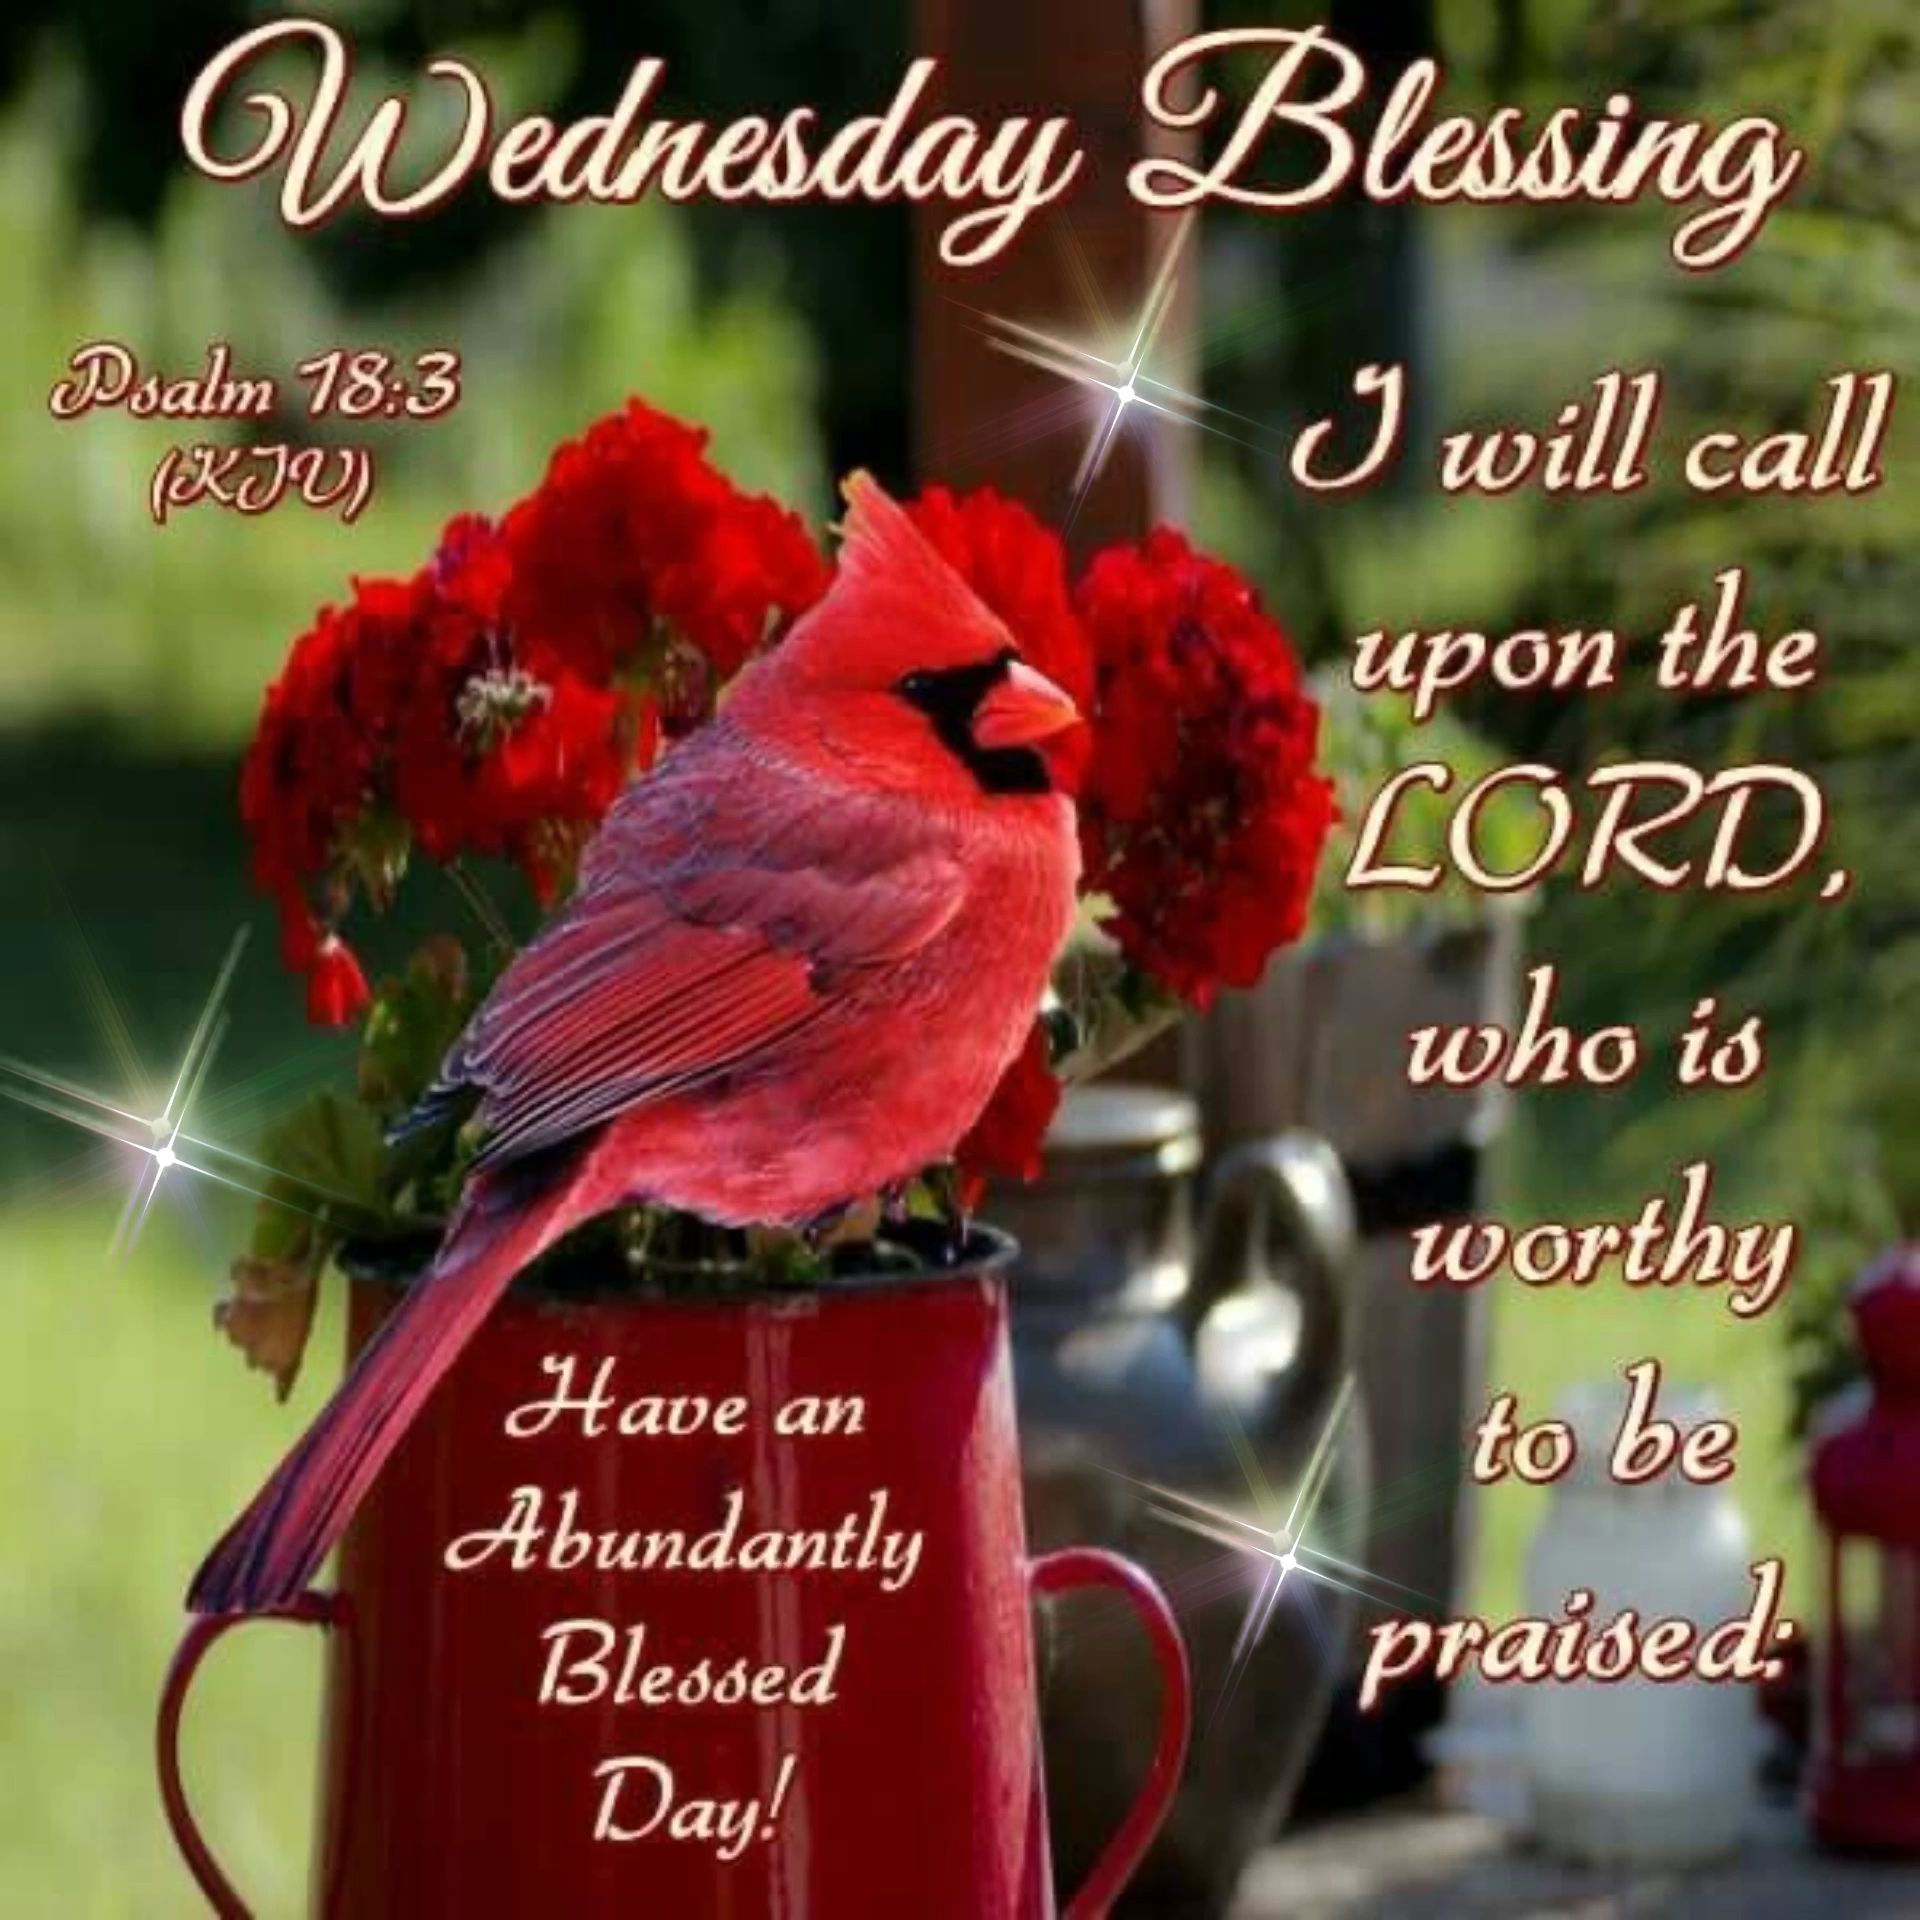 630 Daily blessings Wednesday ideas in 2021   blessed wednesday, wednesday  quotes, morning blessings